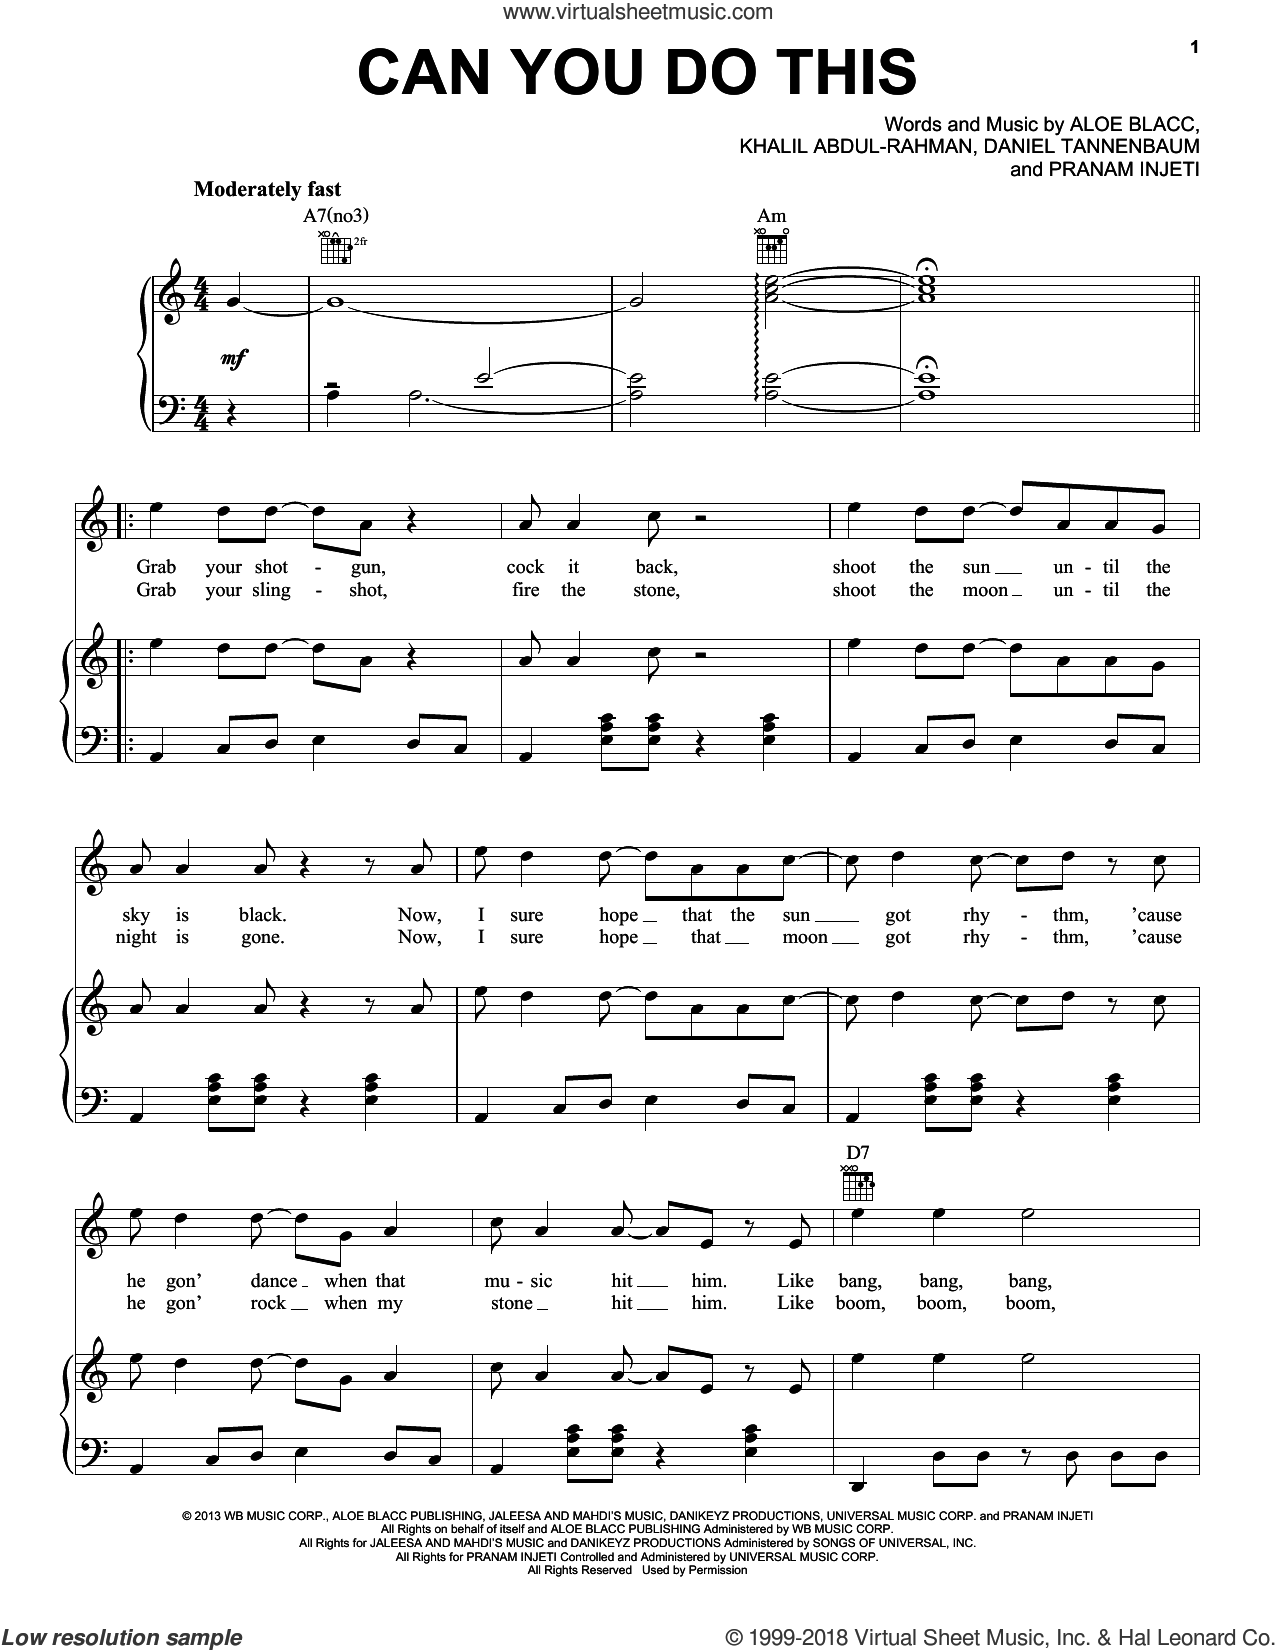 Can You Do This sheet music for voice, piano or guitar by Aloe Blacc, Daniel Tannenbaum, Khalil Abdul-Rahman and Pranam Injeti, intermediate skill level